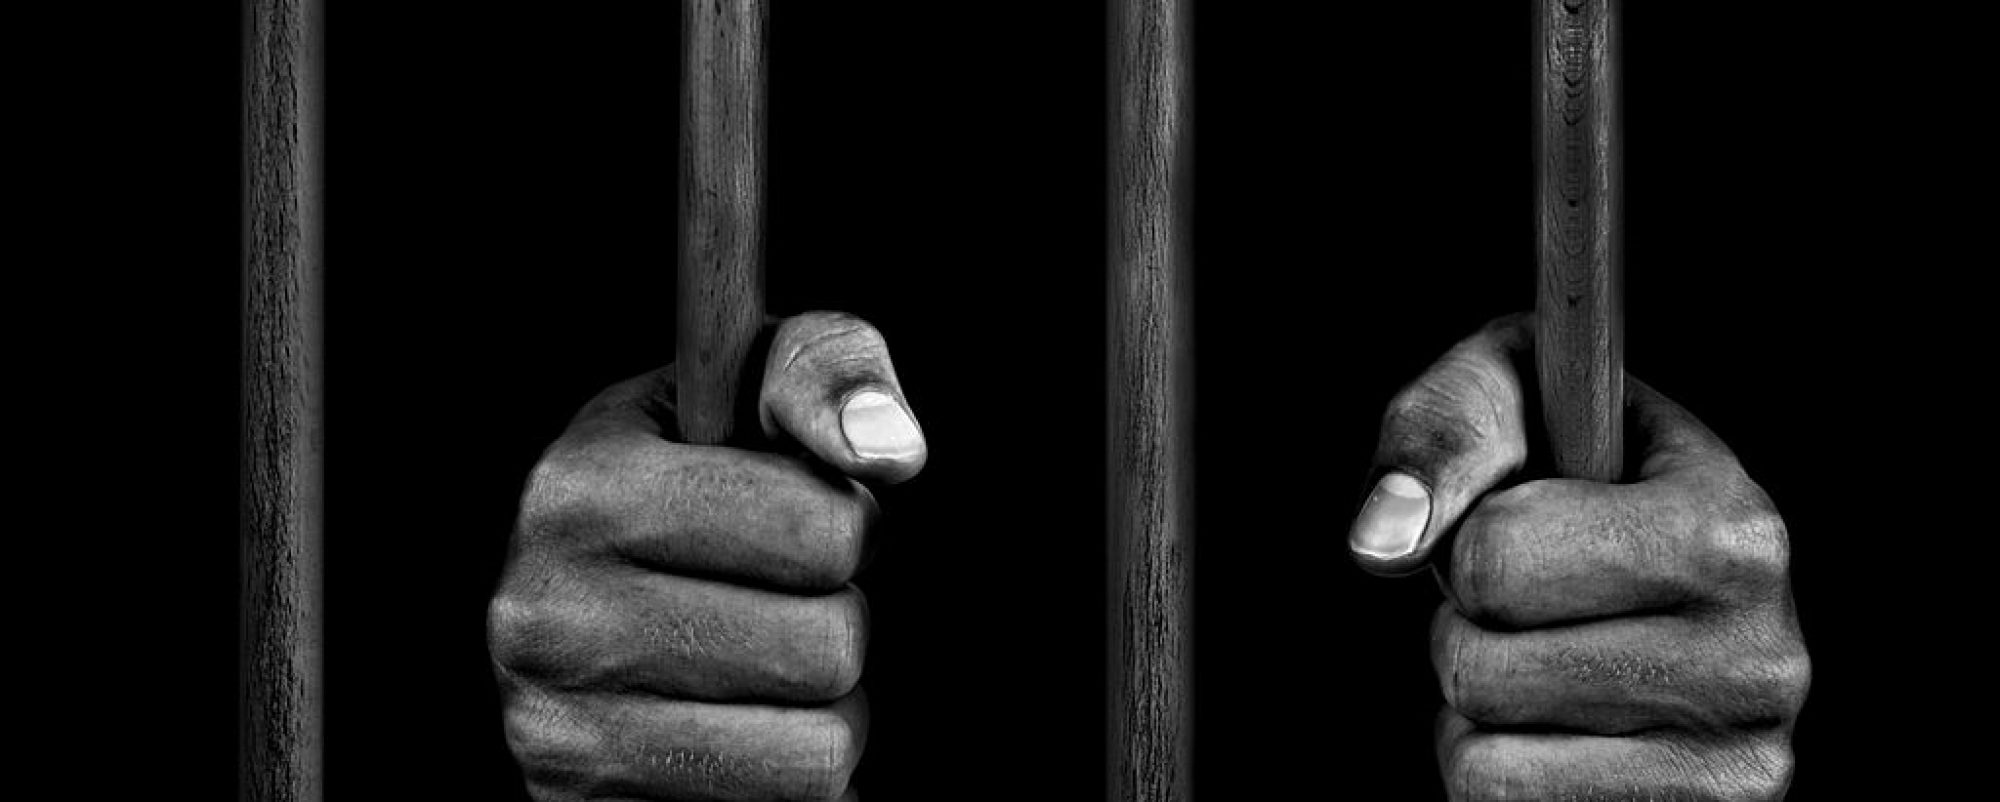 Incarceration Reform